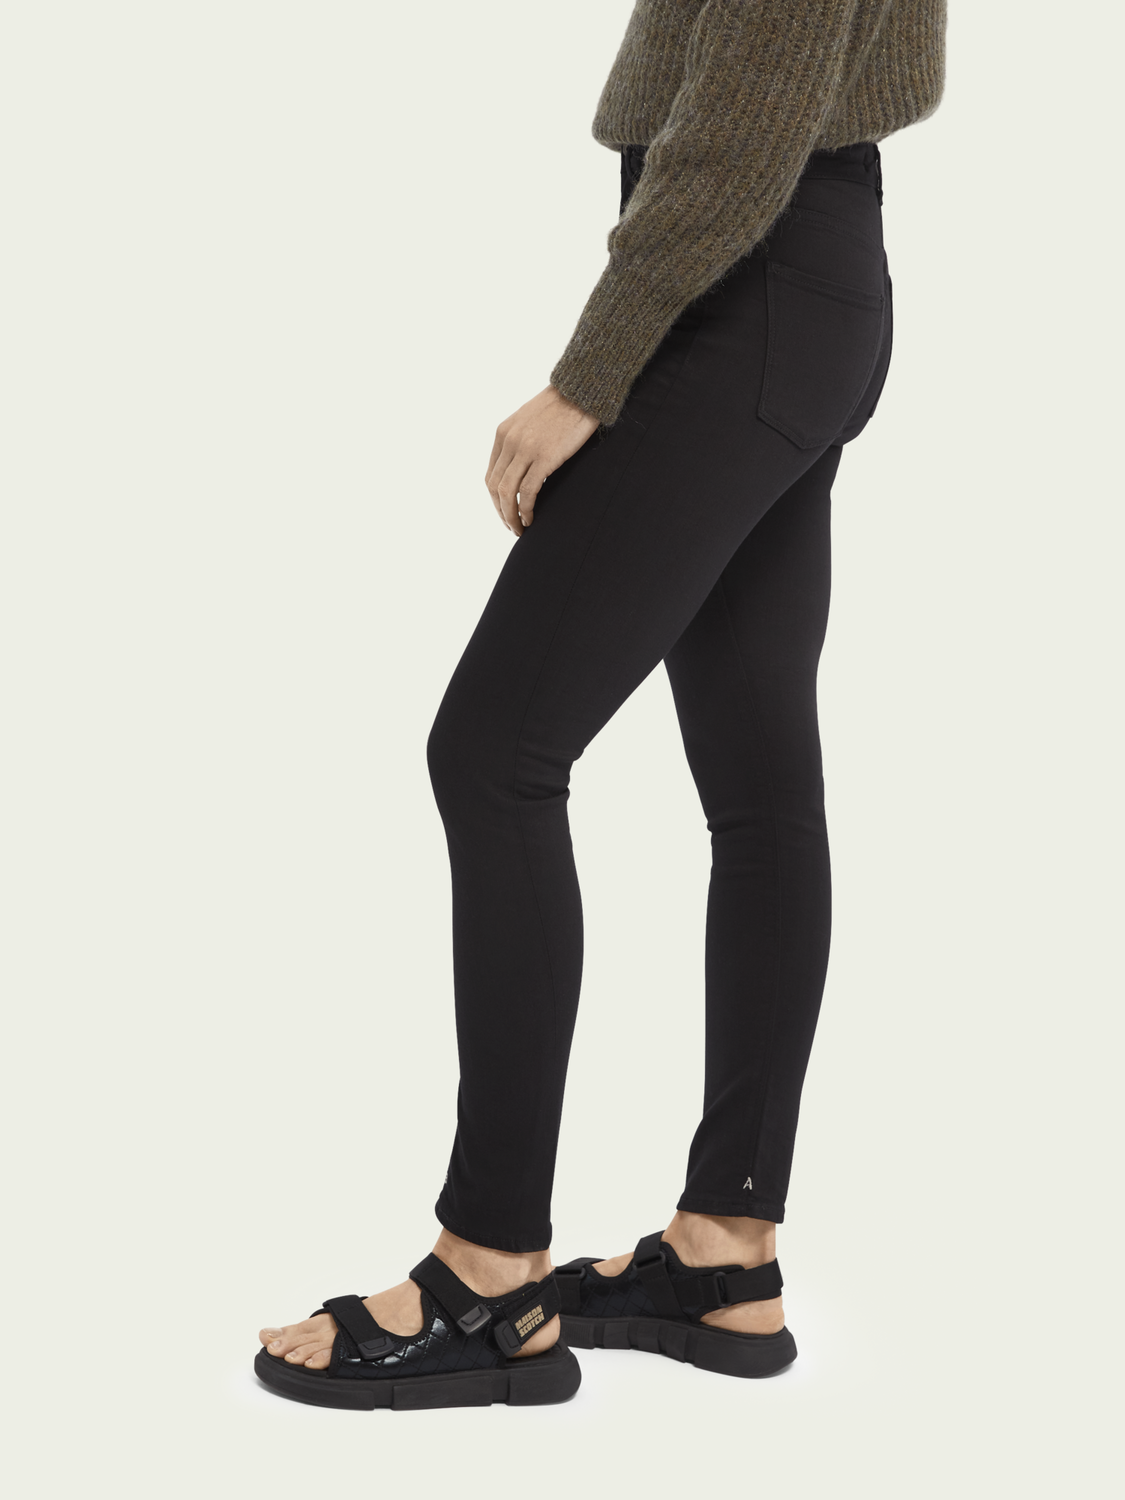 Femme Haut - Stay Black | High rise skinny fit